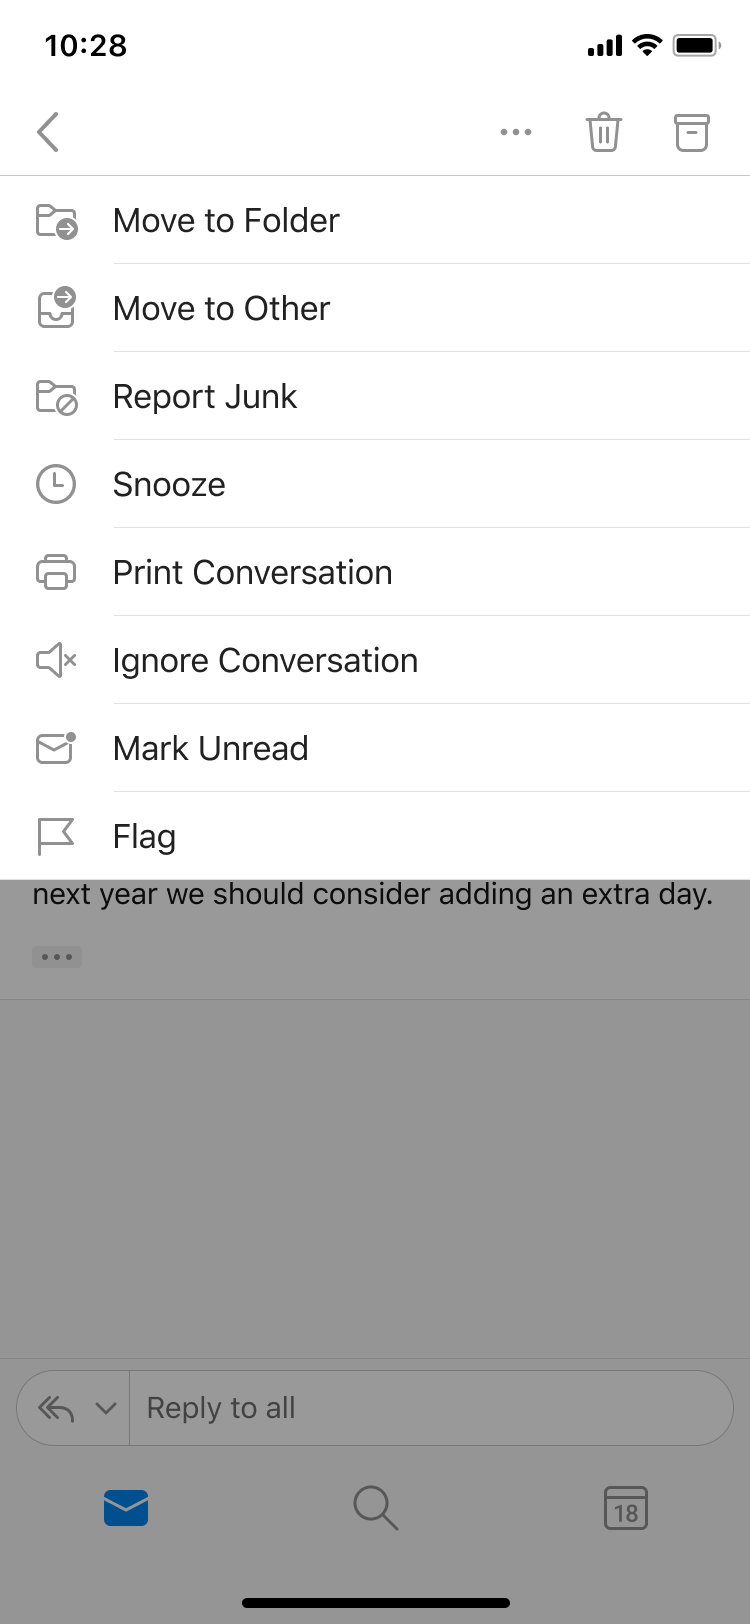 Drop down menu showing option to flag an email.